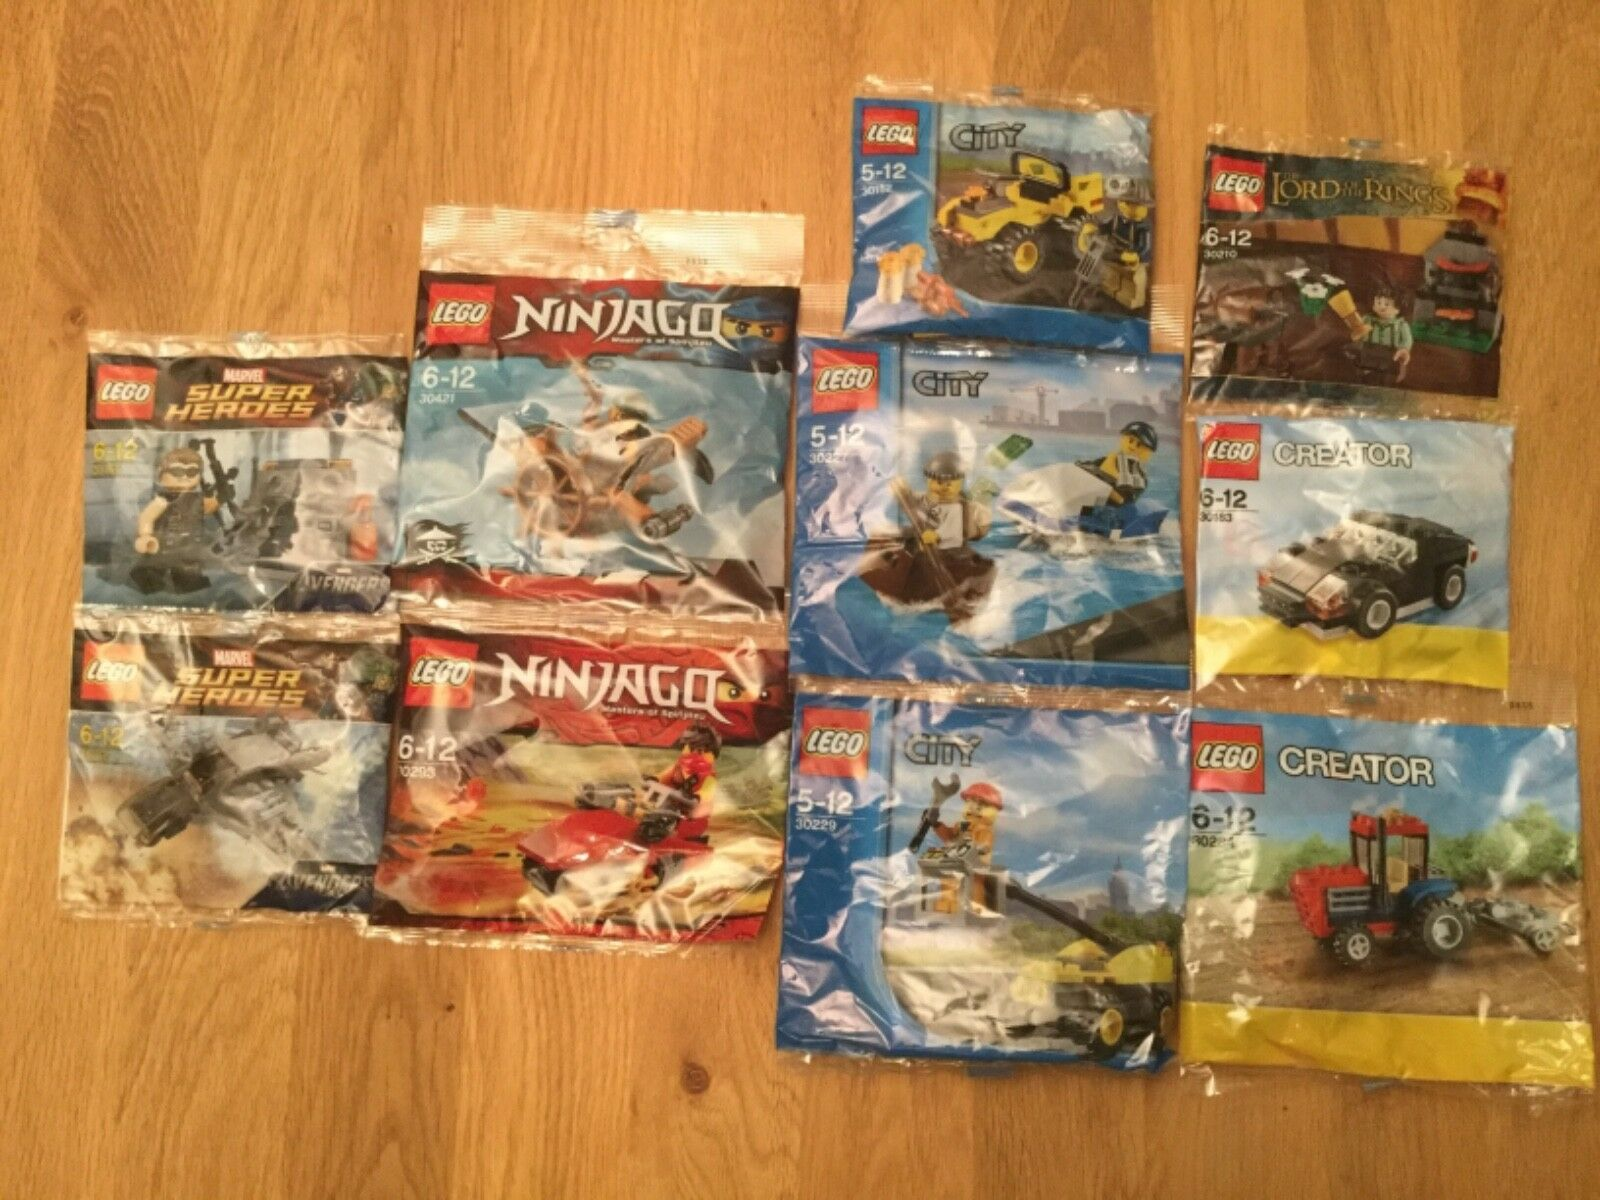 LEGO MINI BUILD KITS - EXCELLENT SELECTION OF 10 NEW SEALED POLYBAGS. BNIP.